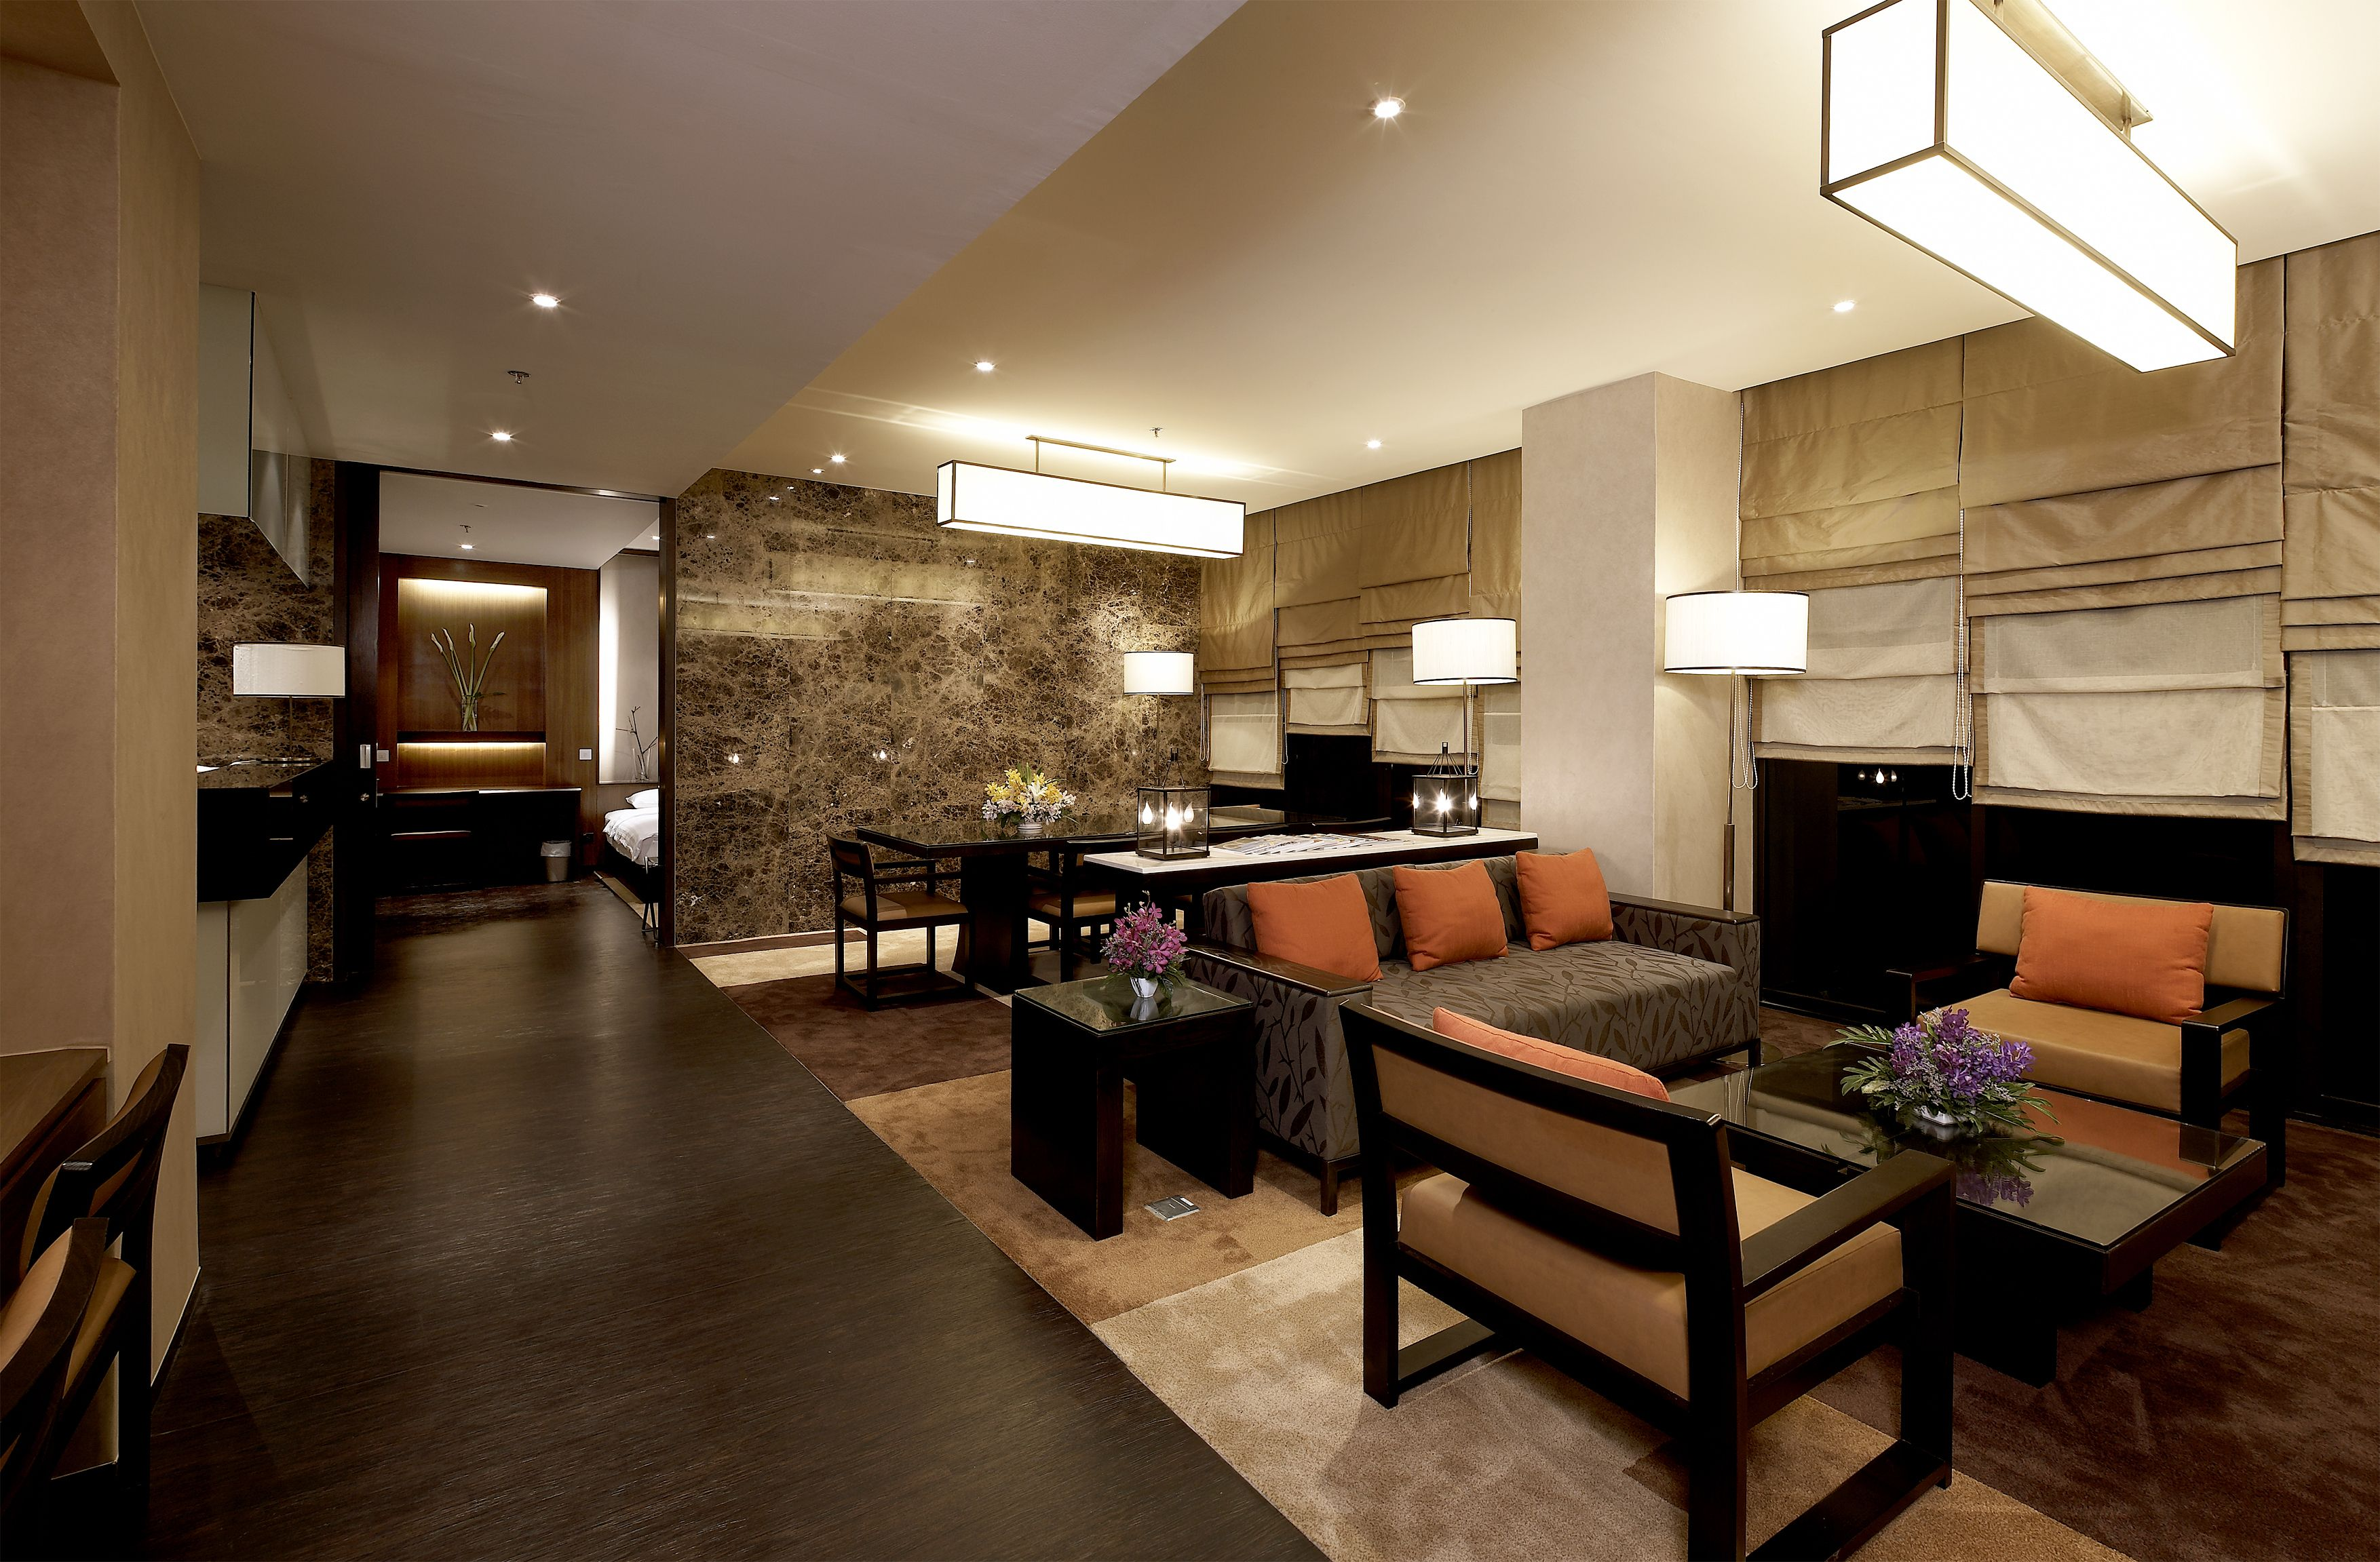 Luxurious Hotel Rooms • Variant Living in 2020 Room